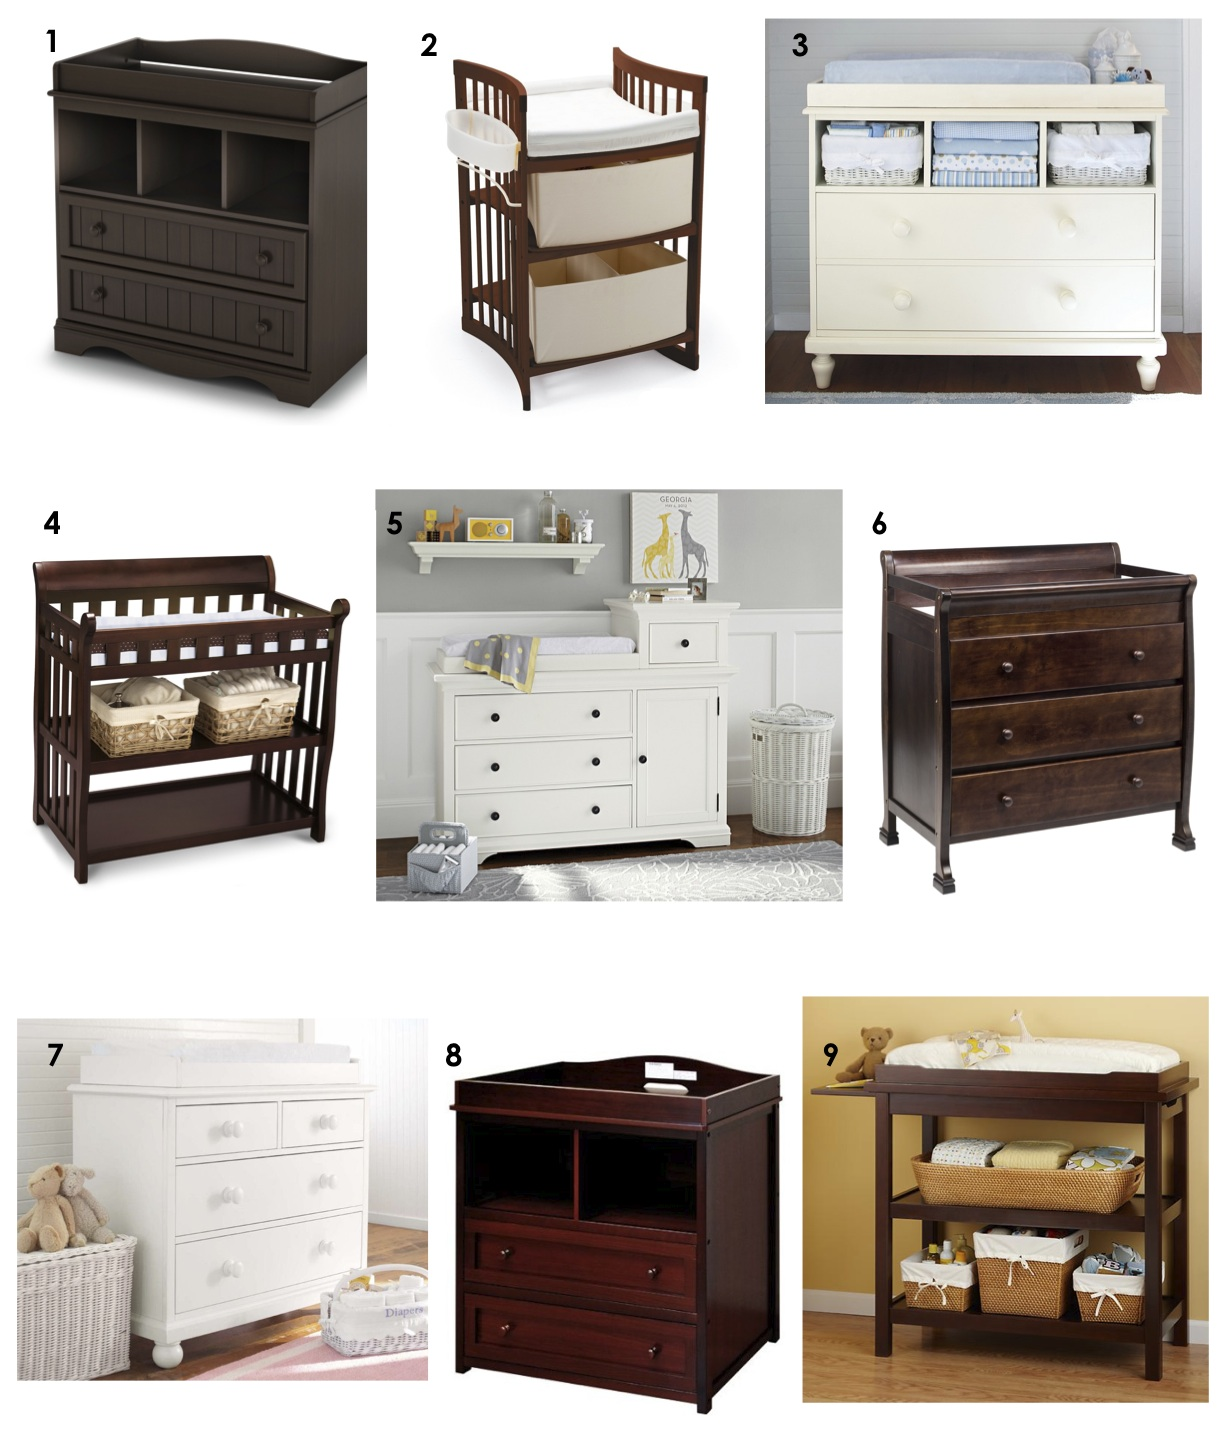 Diaper Changing Tables 9 Favorites